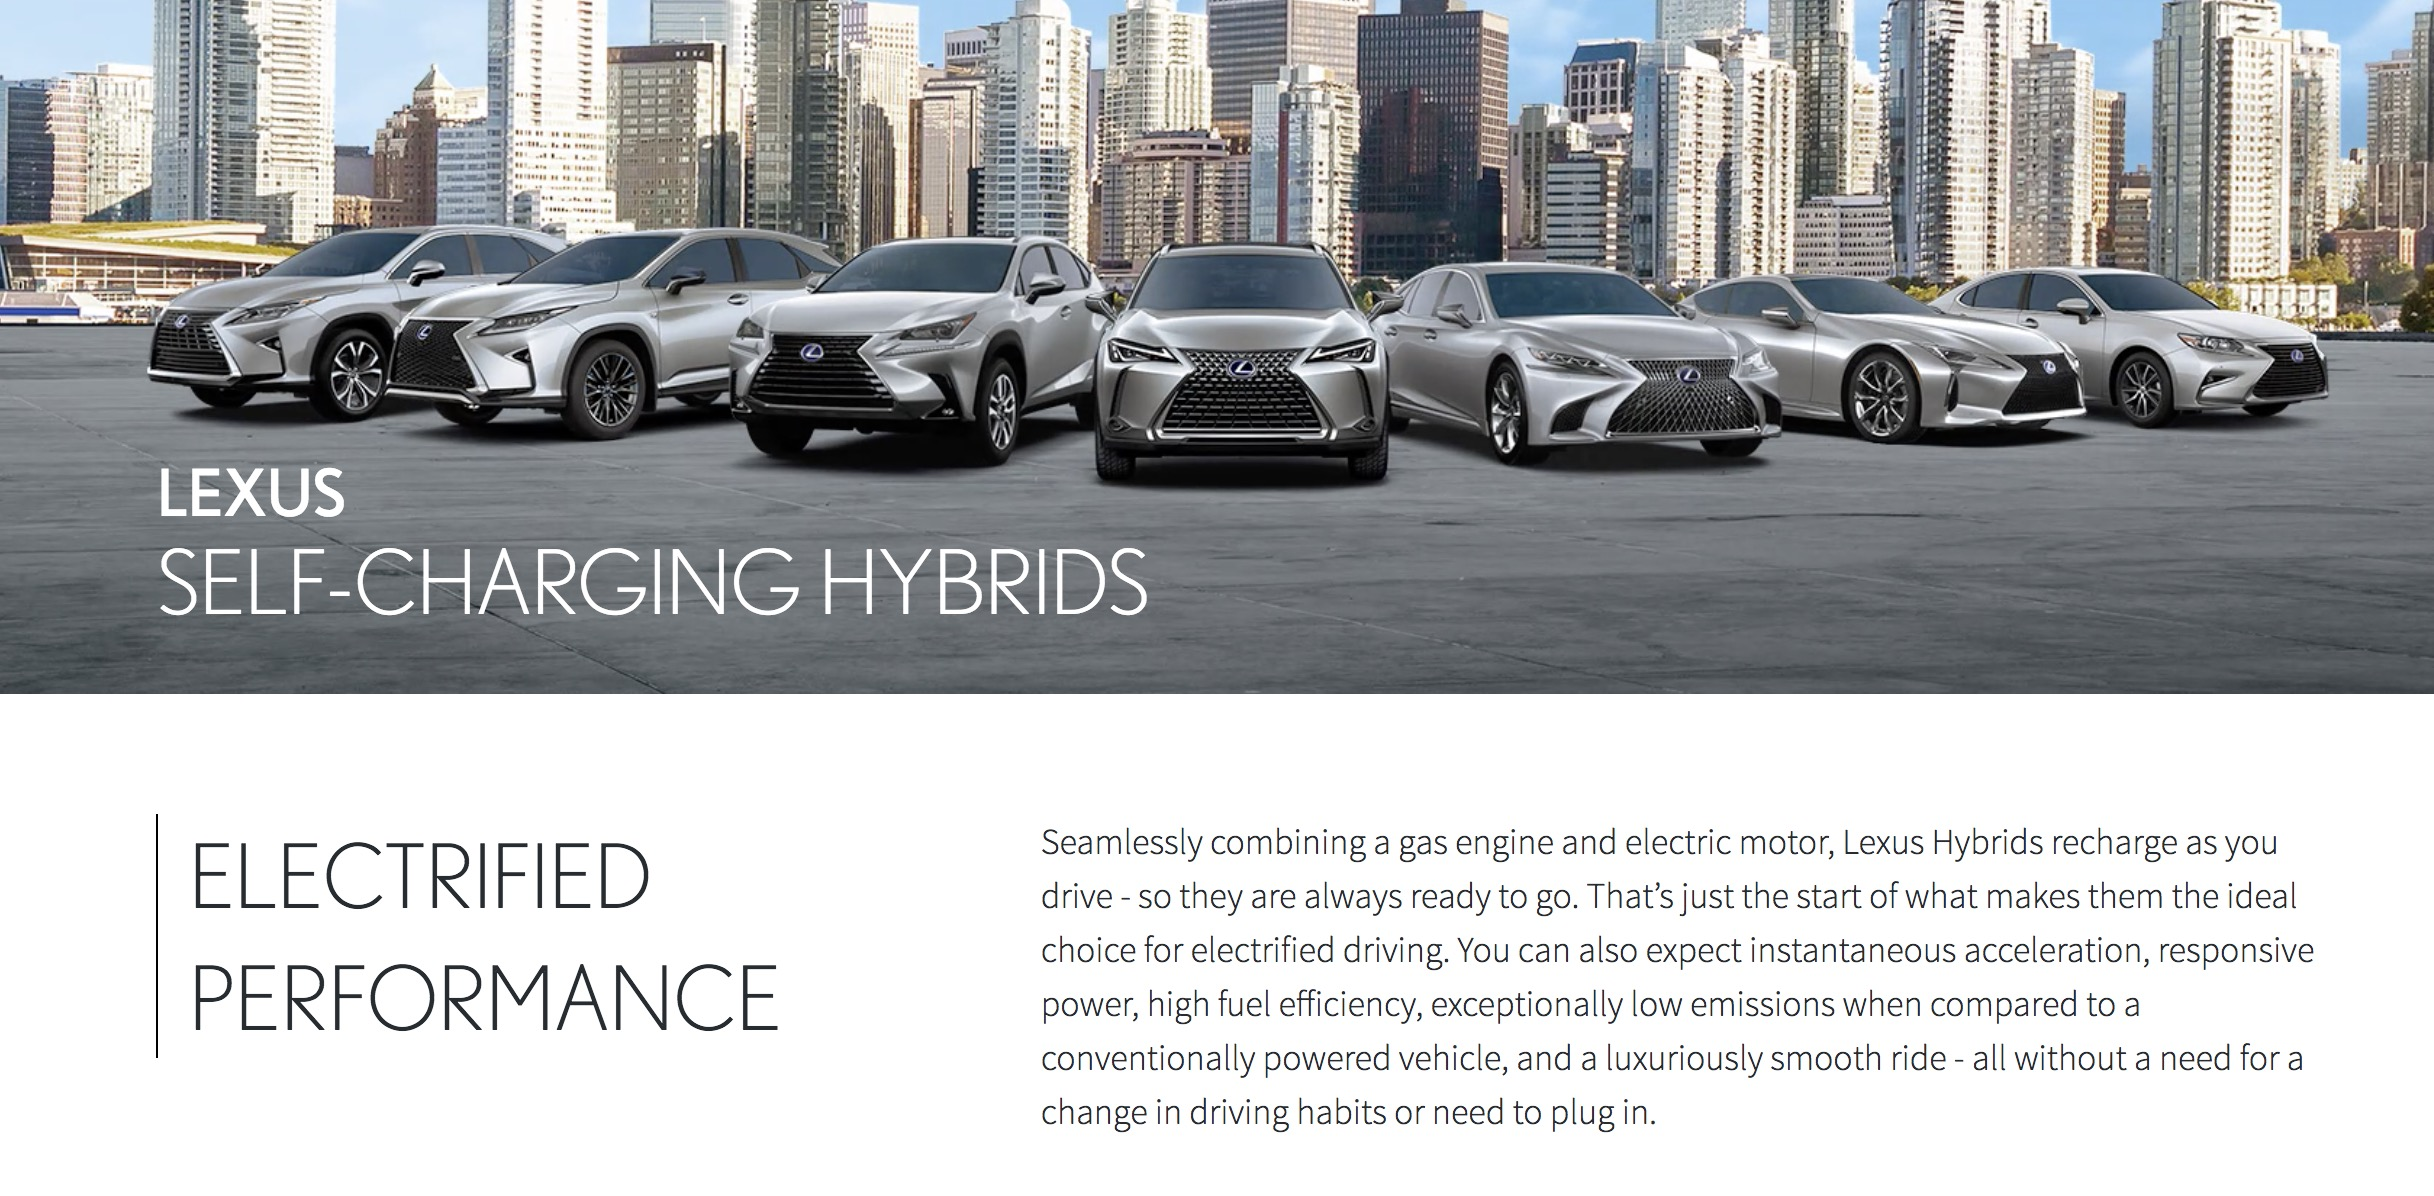 Lexus Trash Talks All Electric Vehicles In Shameful Hybrid Vehicle Advertising